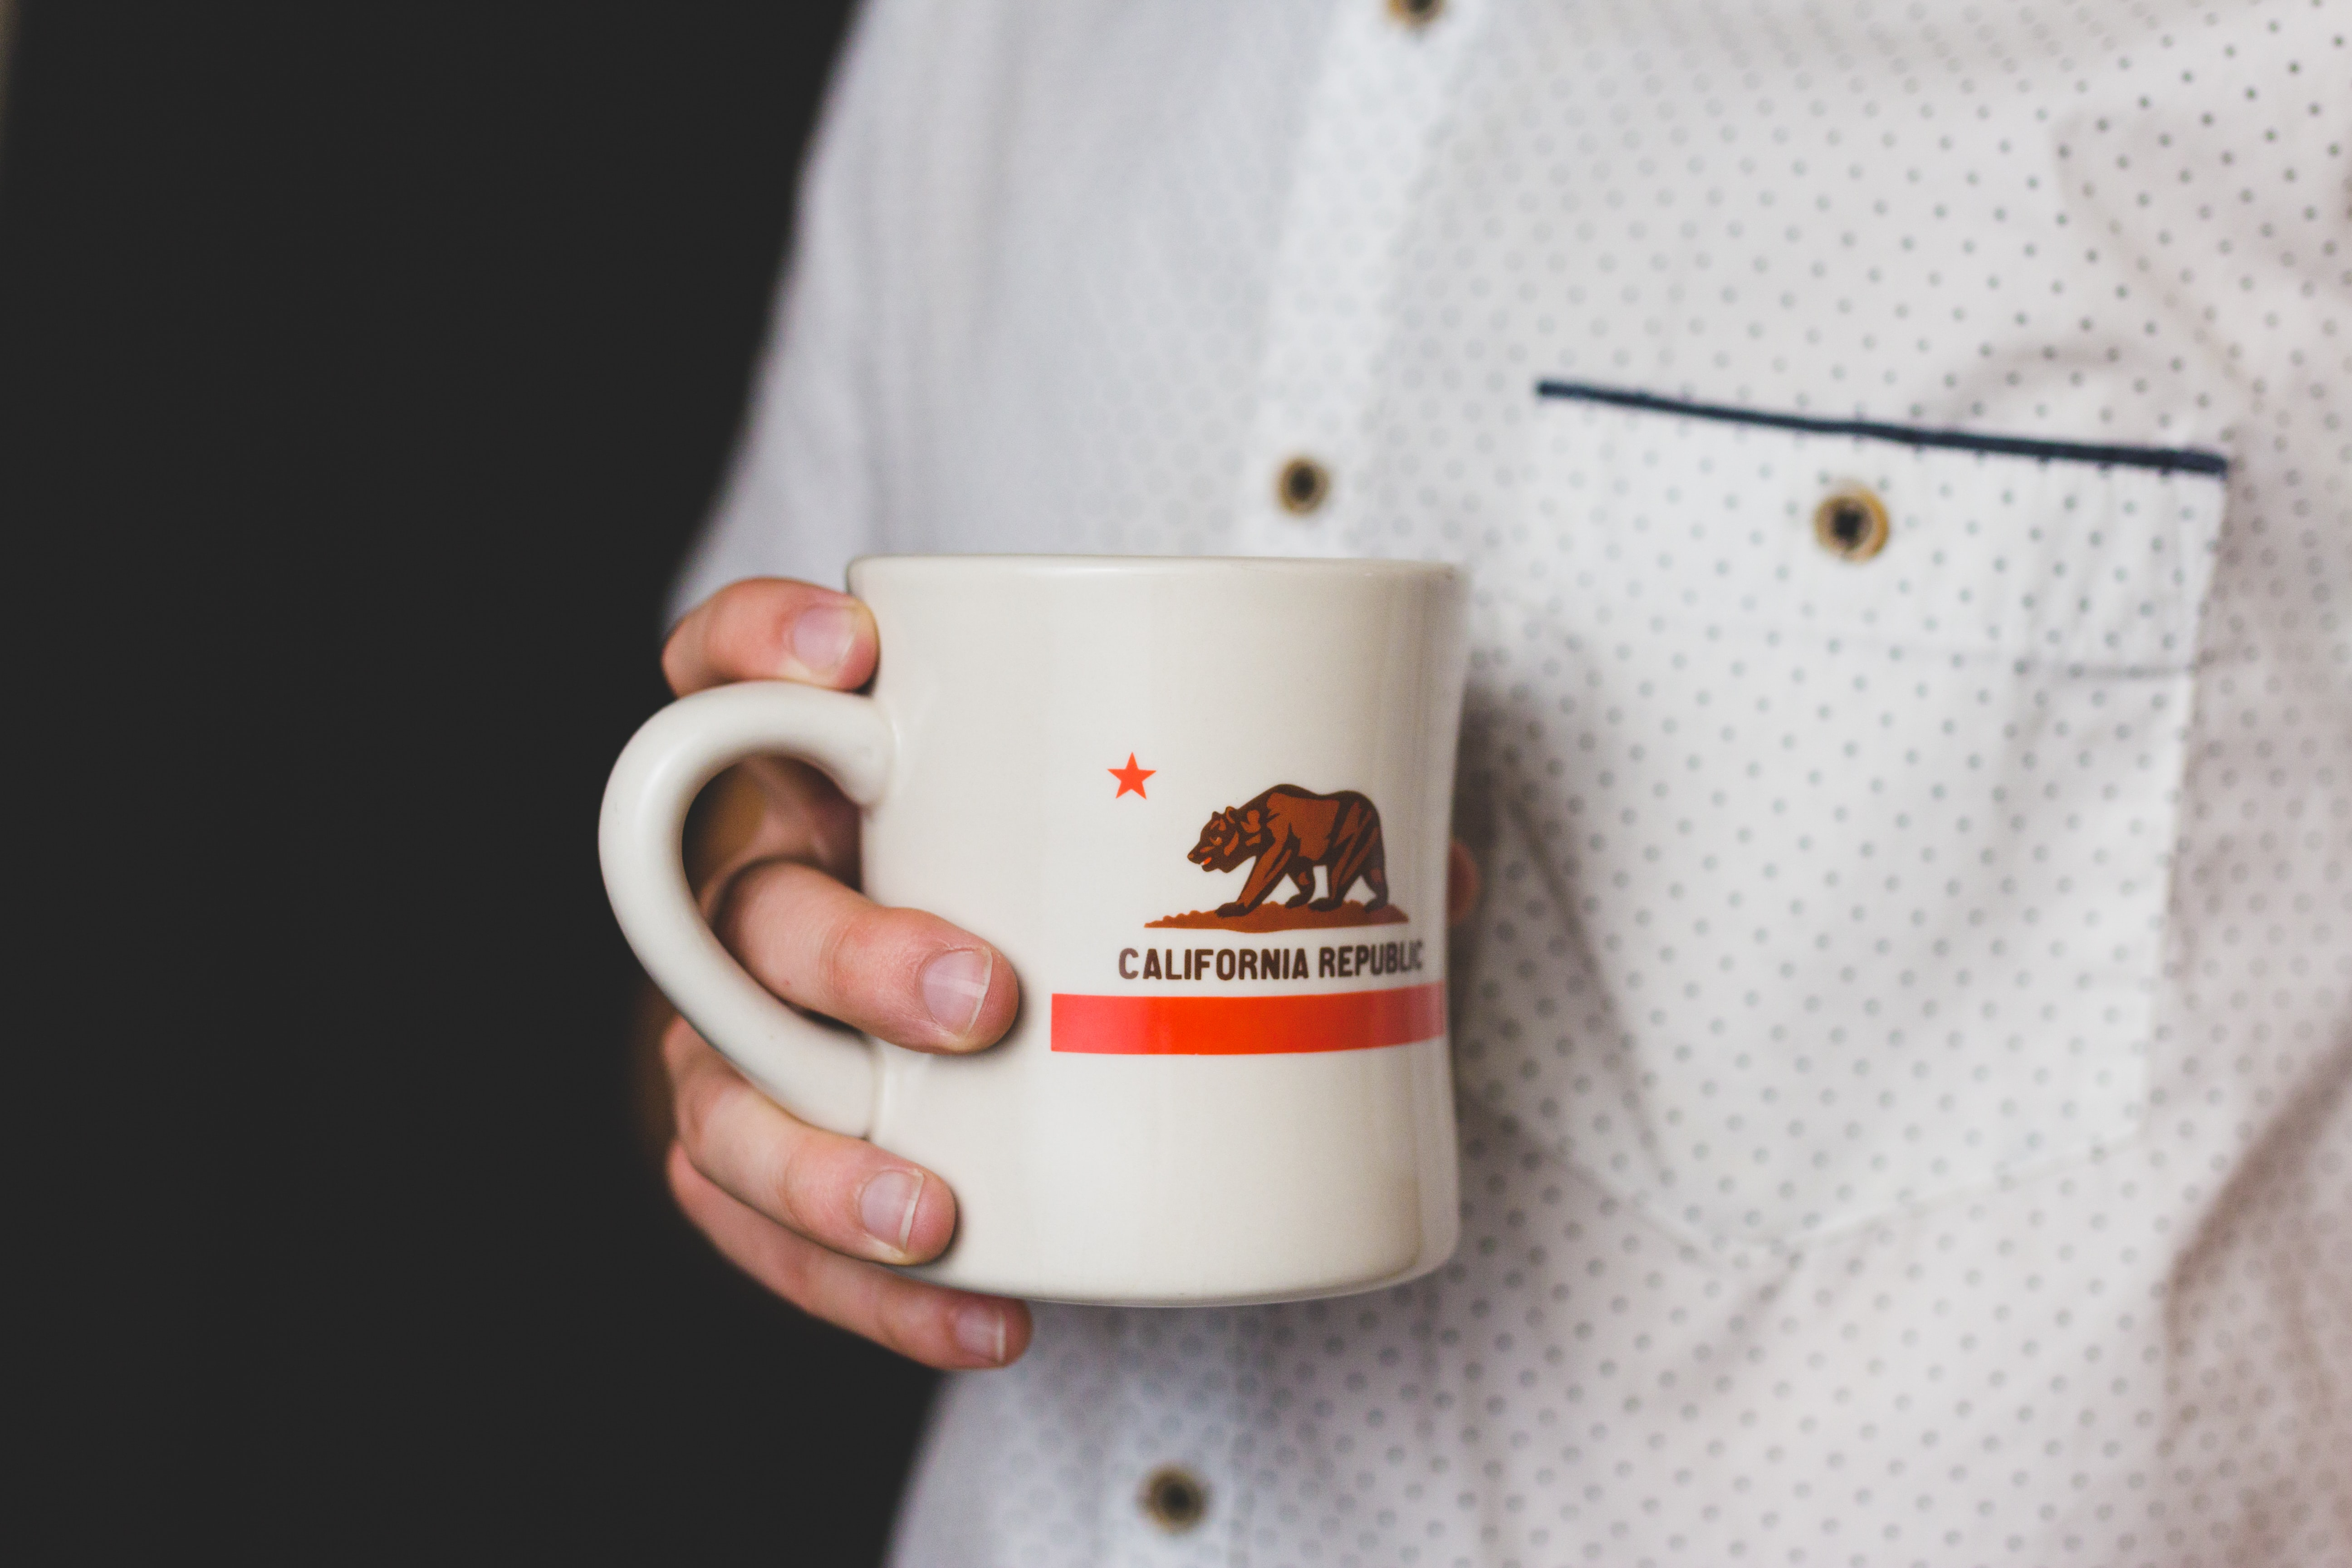 person holding white and red California Republic ceramic mug